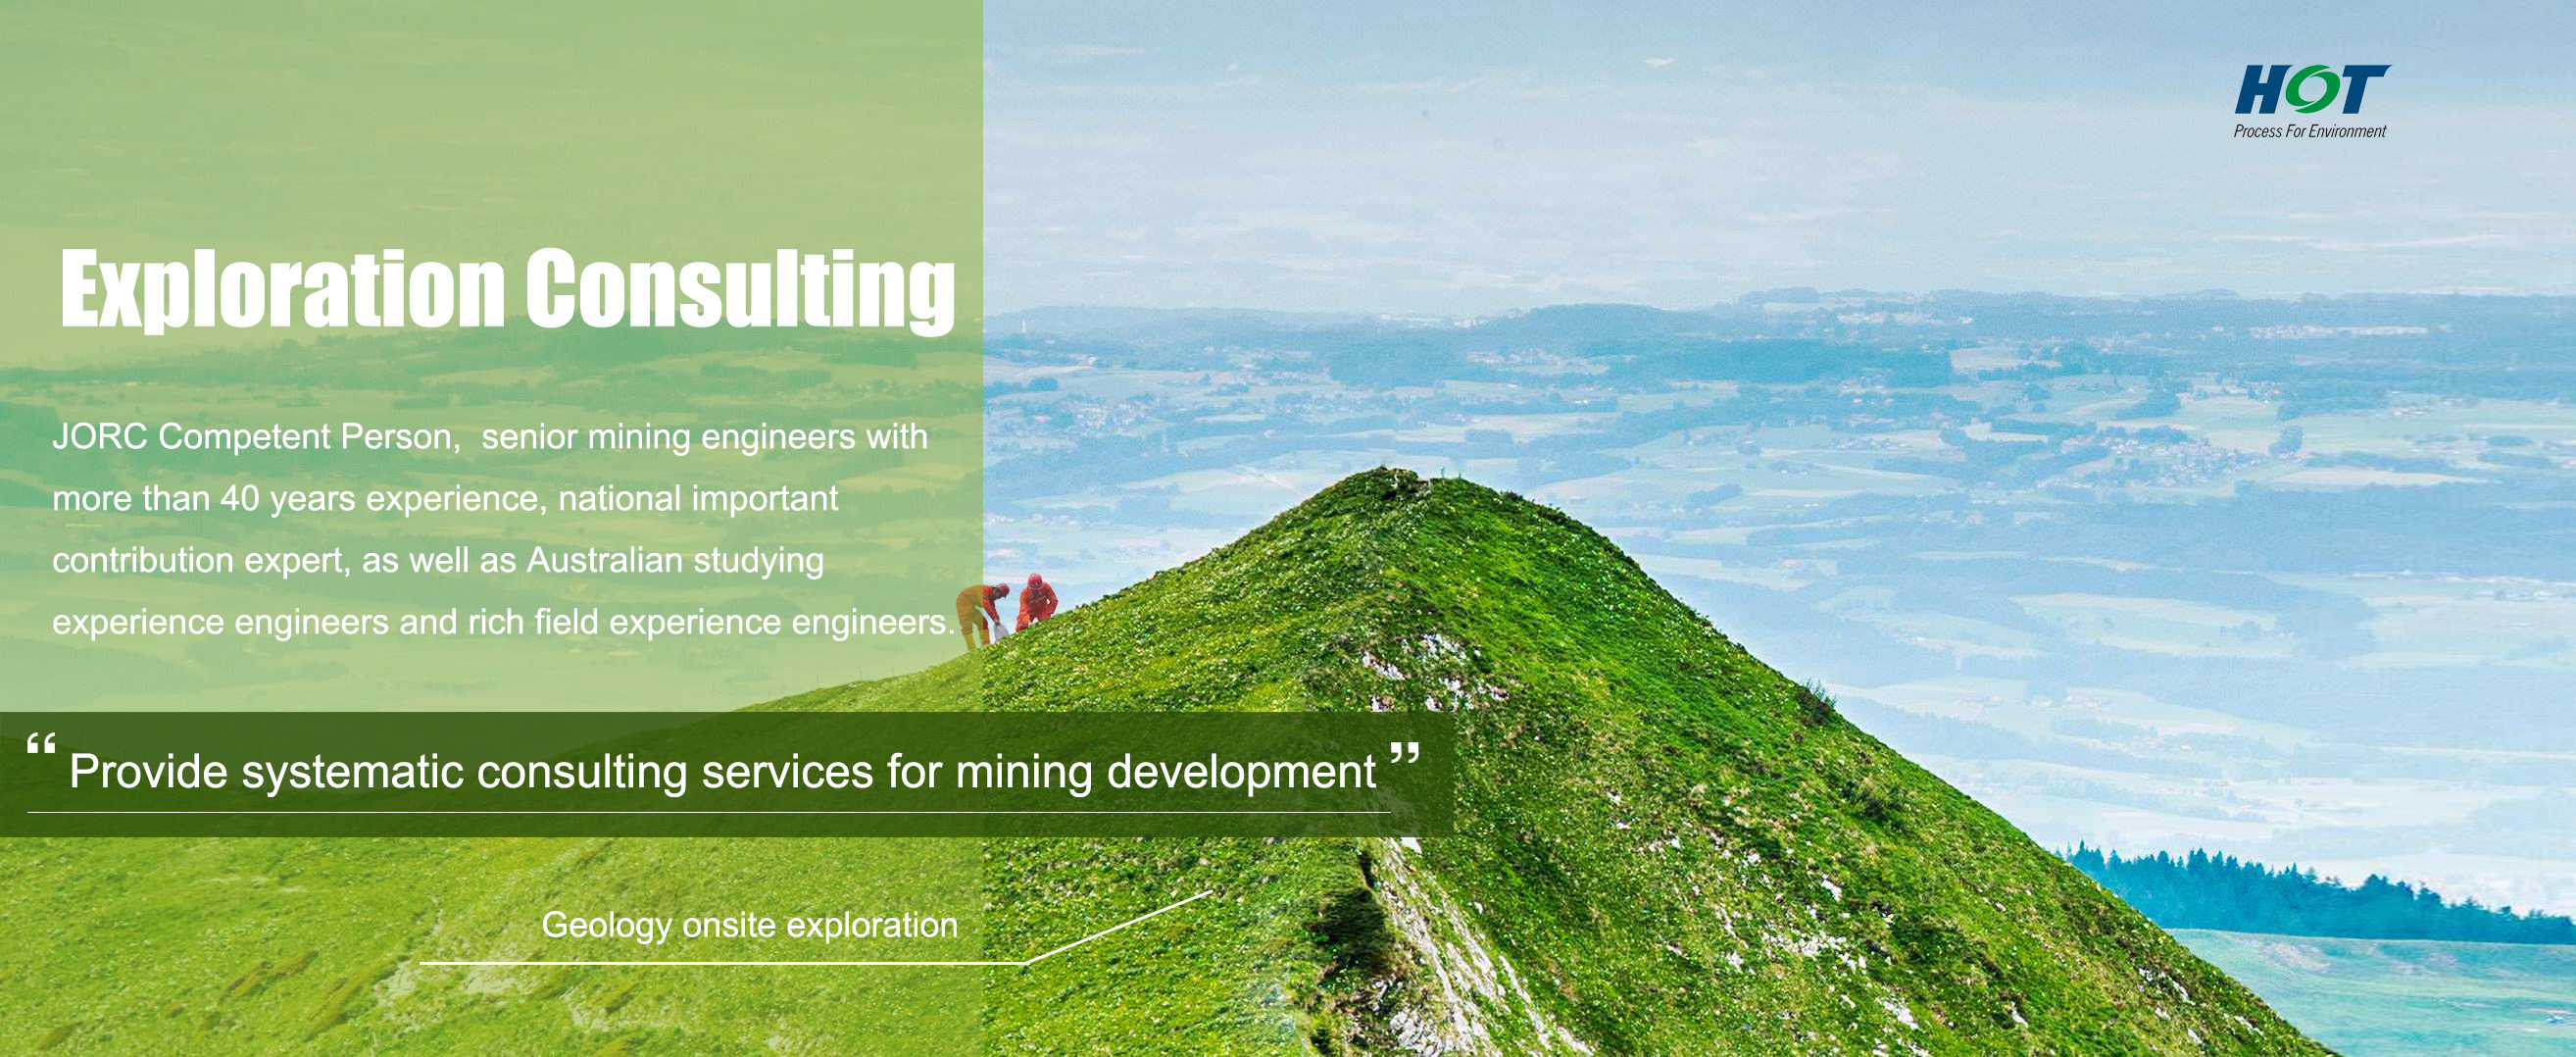 consulting geology HOT Mining Tech